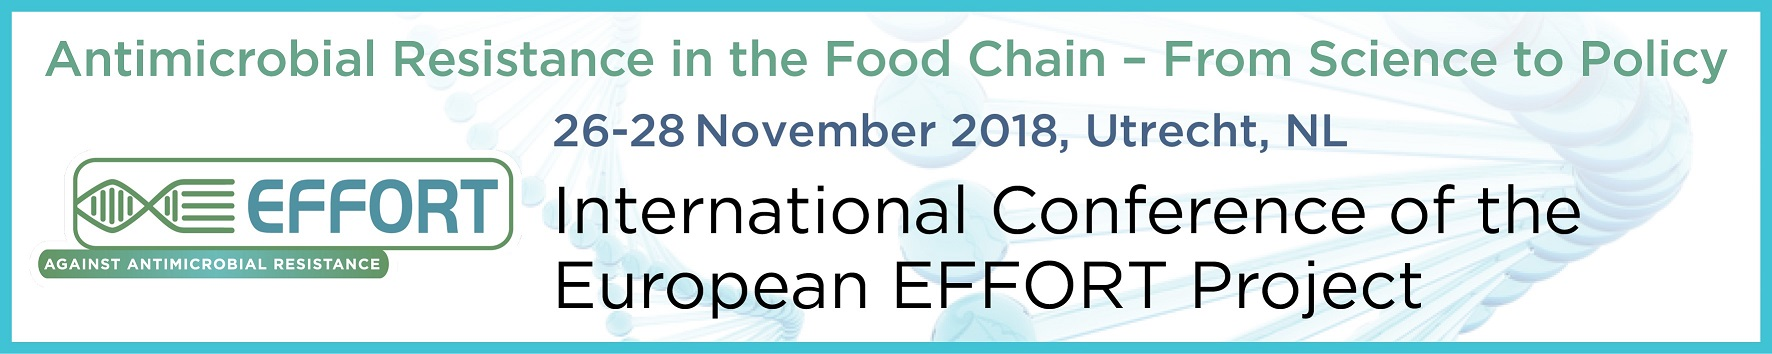 EFFORT International Conference Announcement